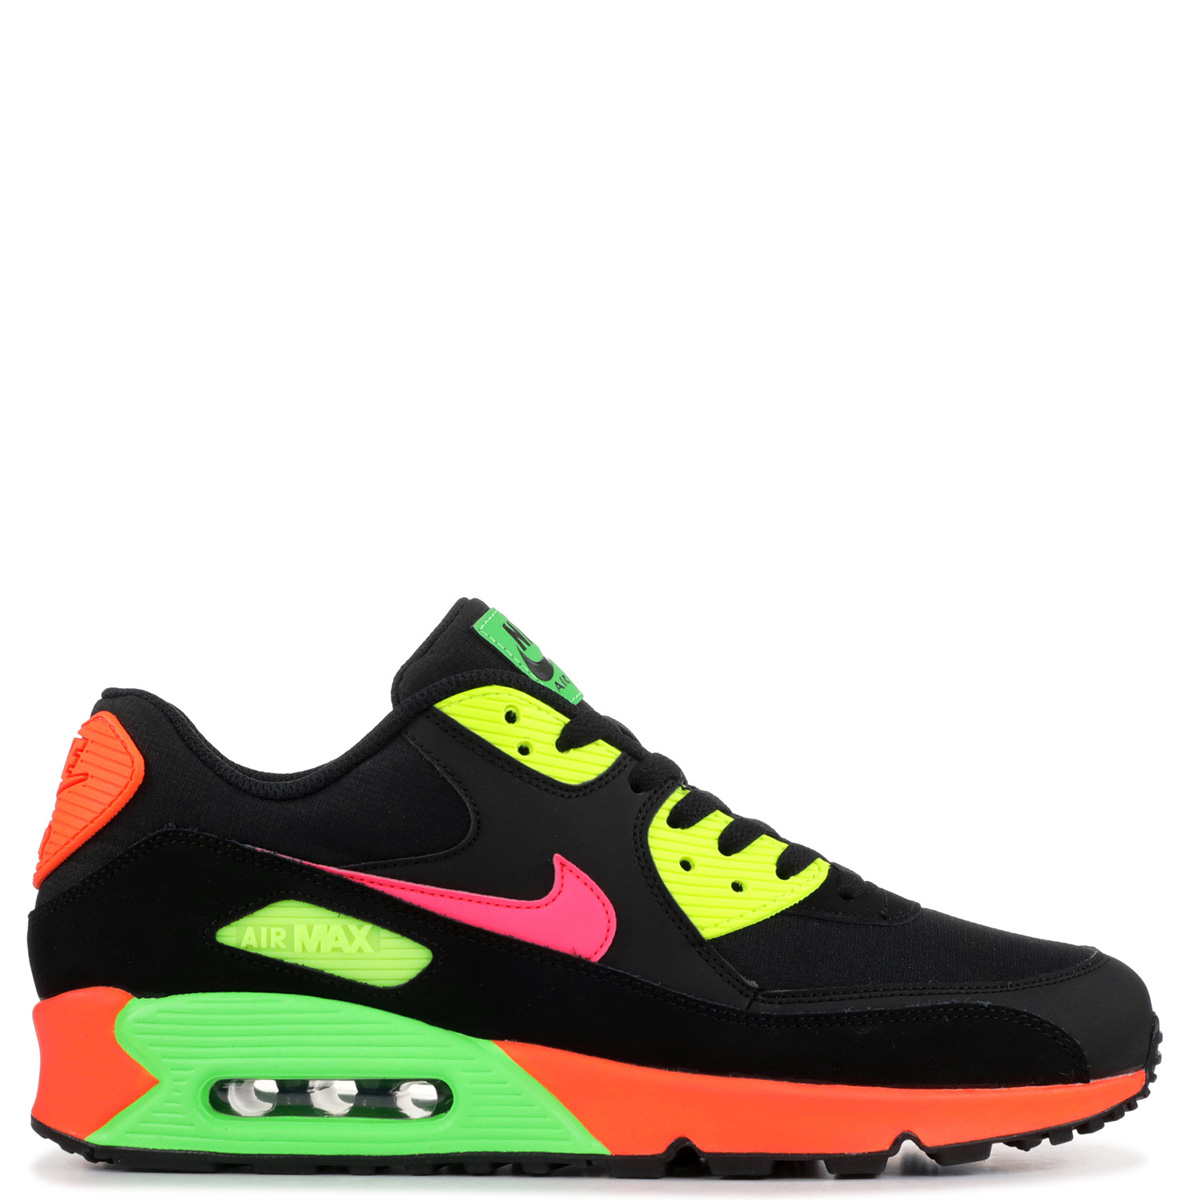 half off a3c49 98f39 Nike NIKE Air Max 90 sneakers men AIR MAX 90 NEON black black CI2290-064